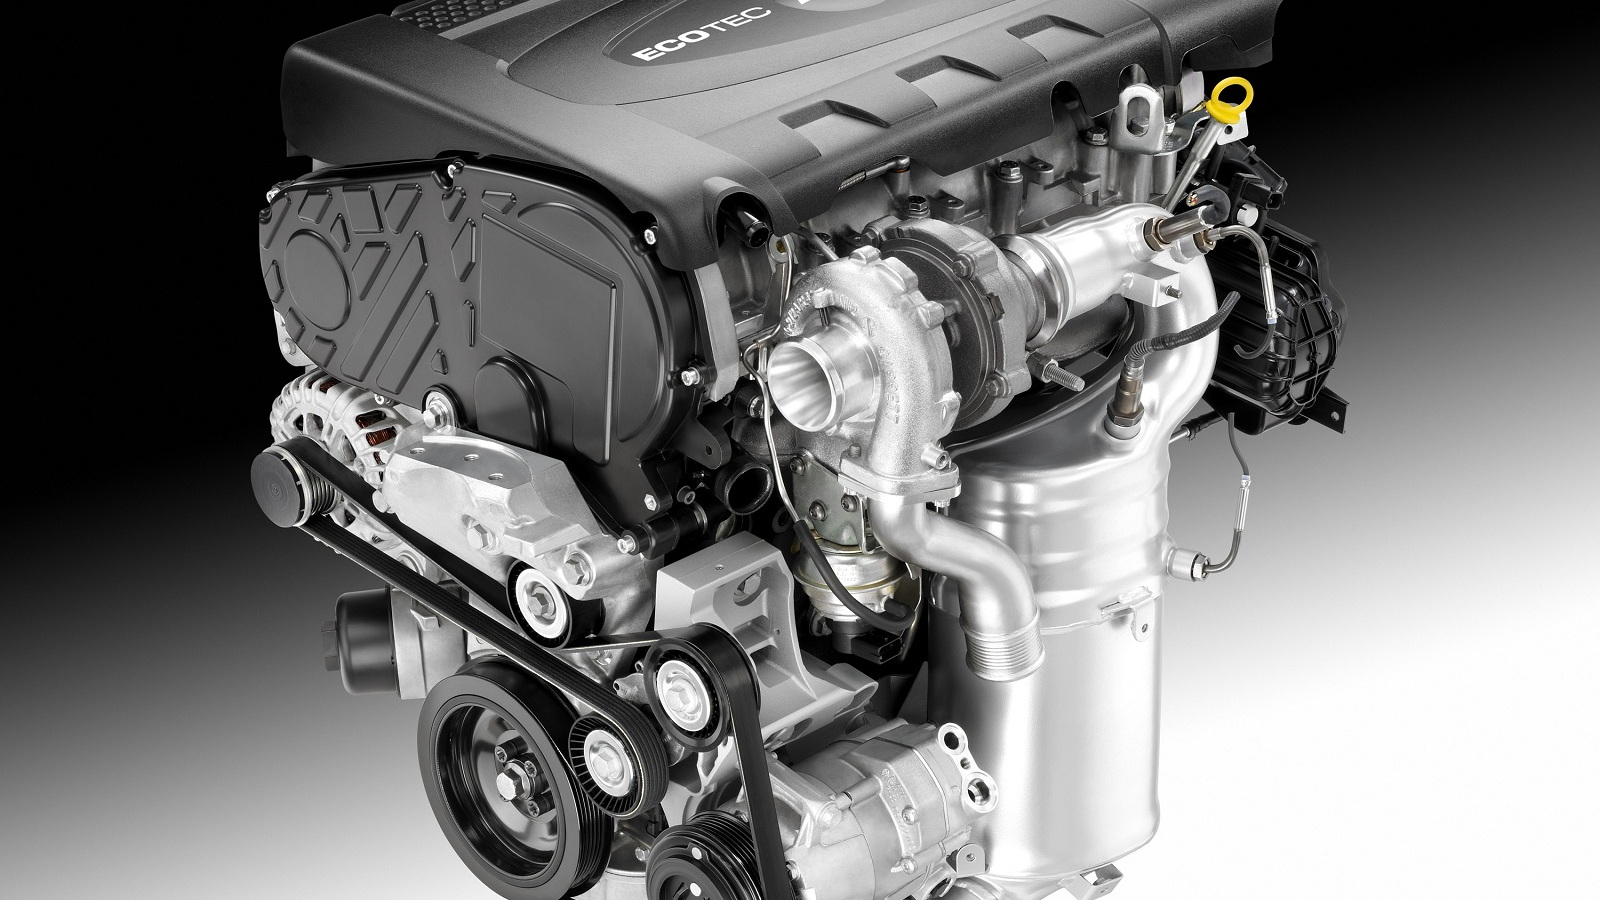 hight resolution of wiring diagram likewise chevy cruze 1 4 turbo engine on chevy 4 2 2014 chevrolet cruze